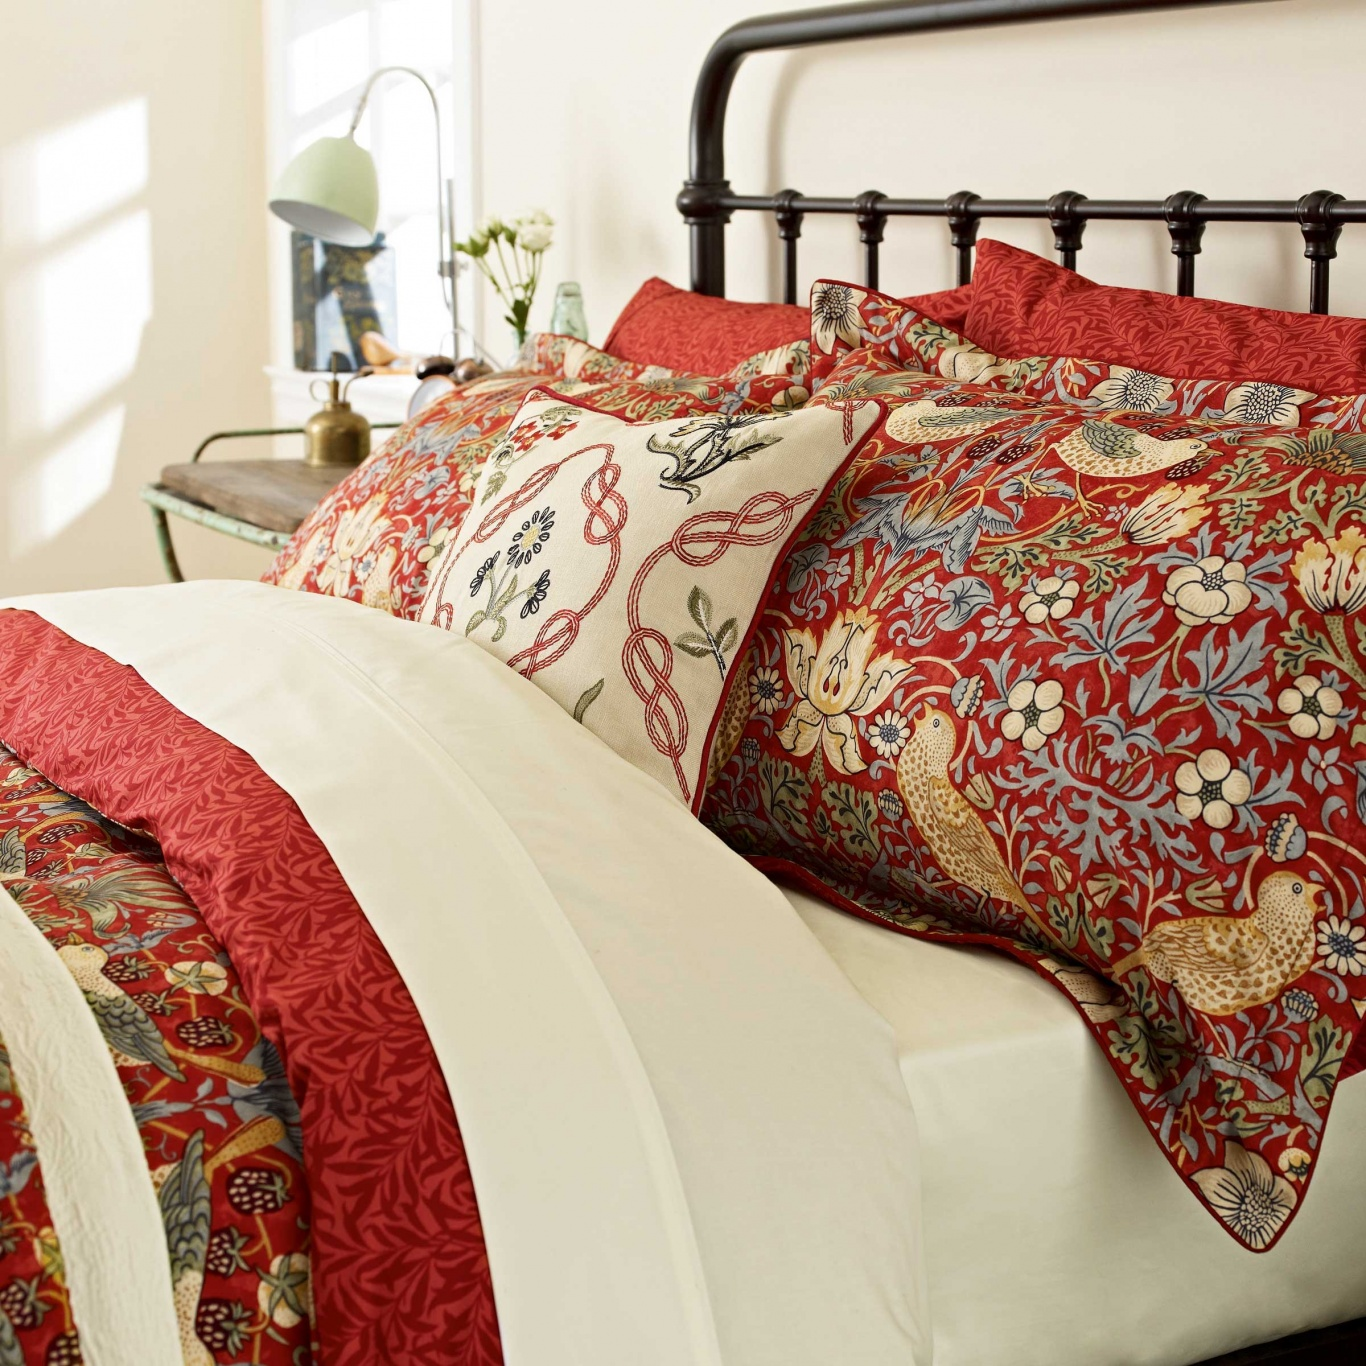 William Morris Strawberry Thief King Duvet Cover Set Crimson Red